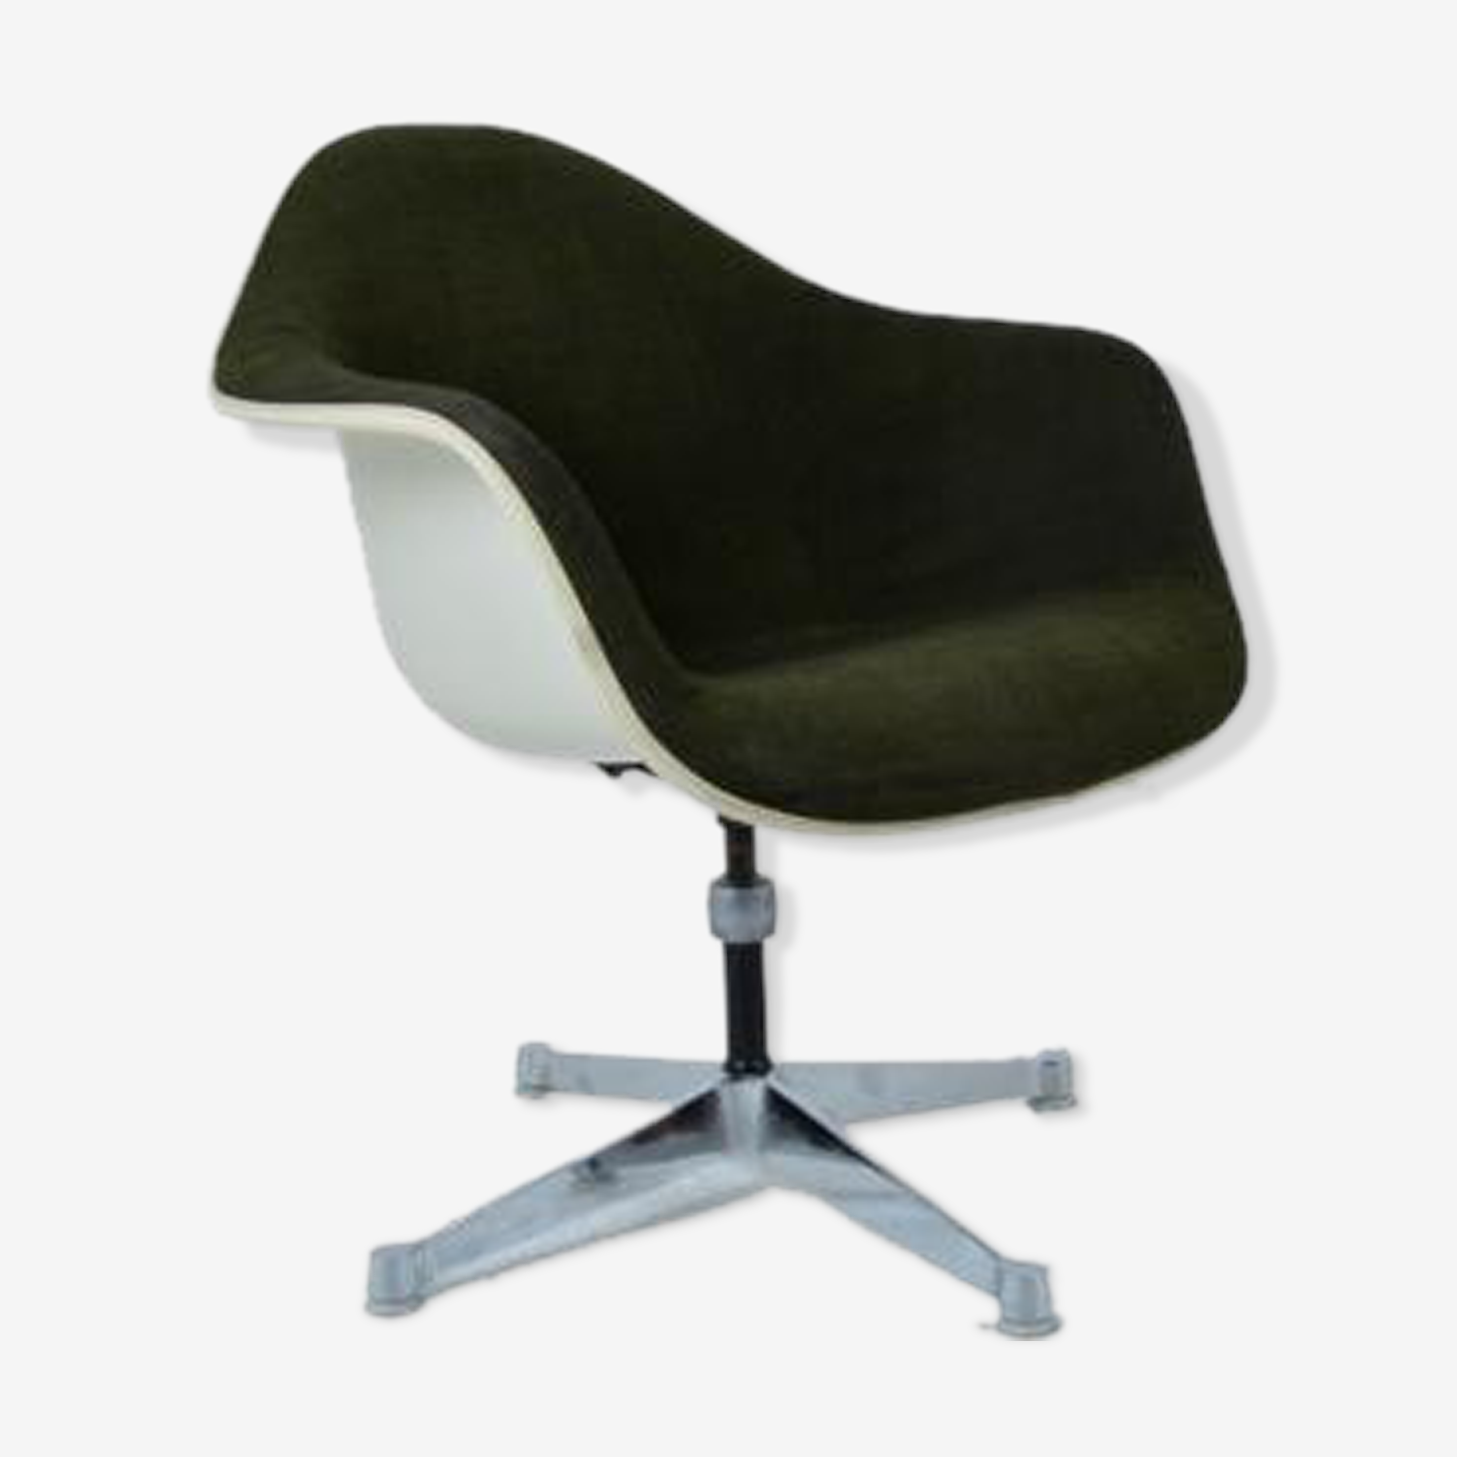 Swivel armchair by Charles and Ray Eames